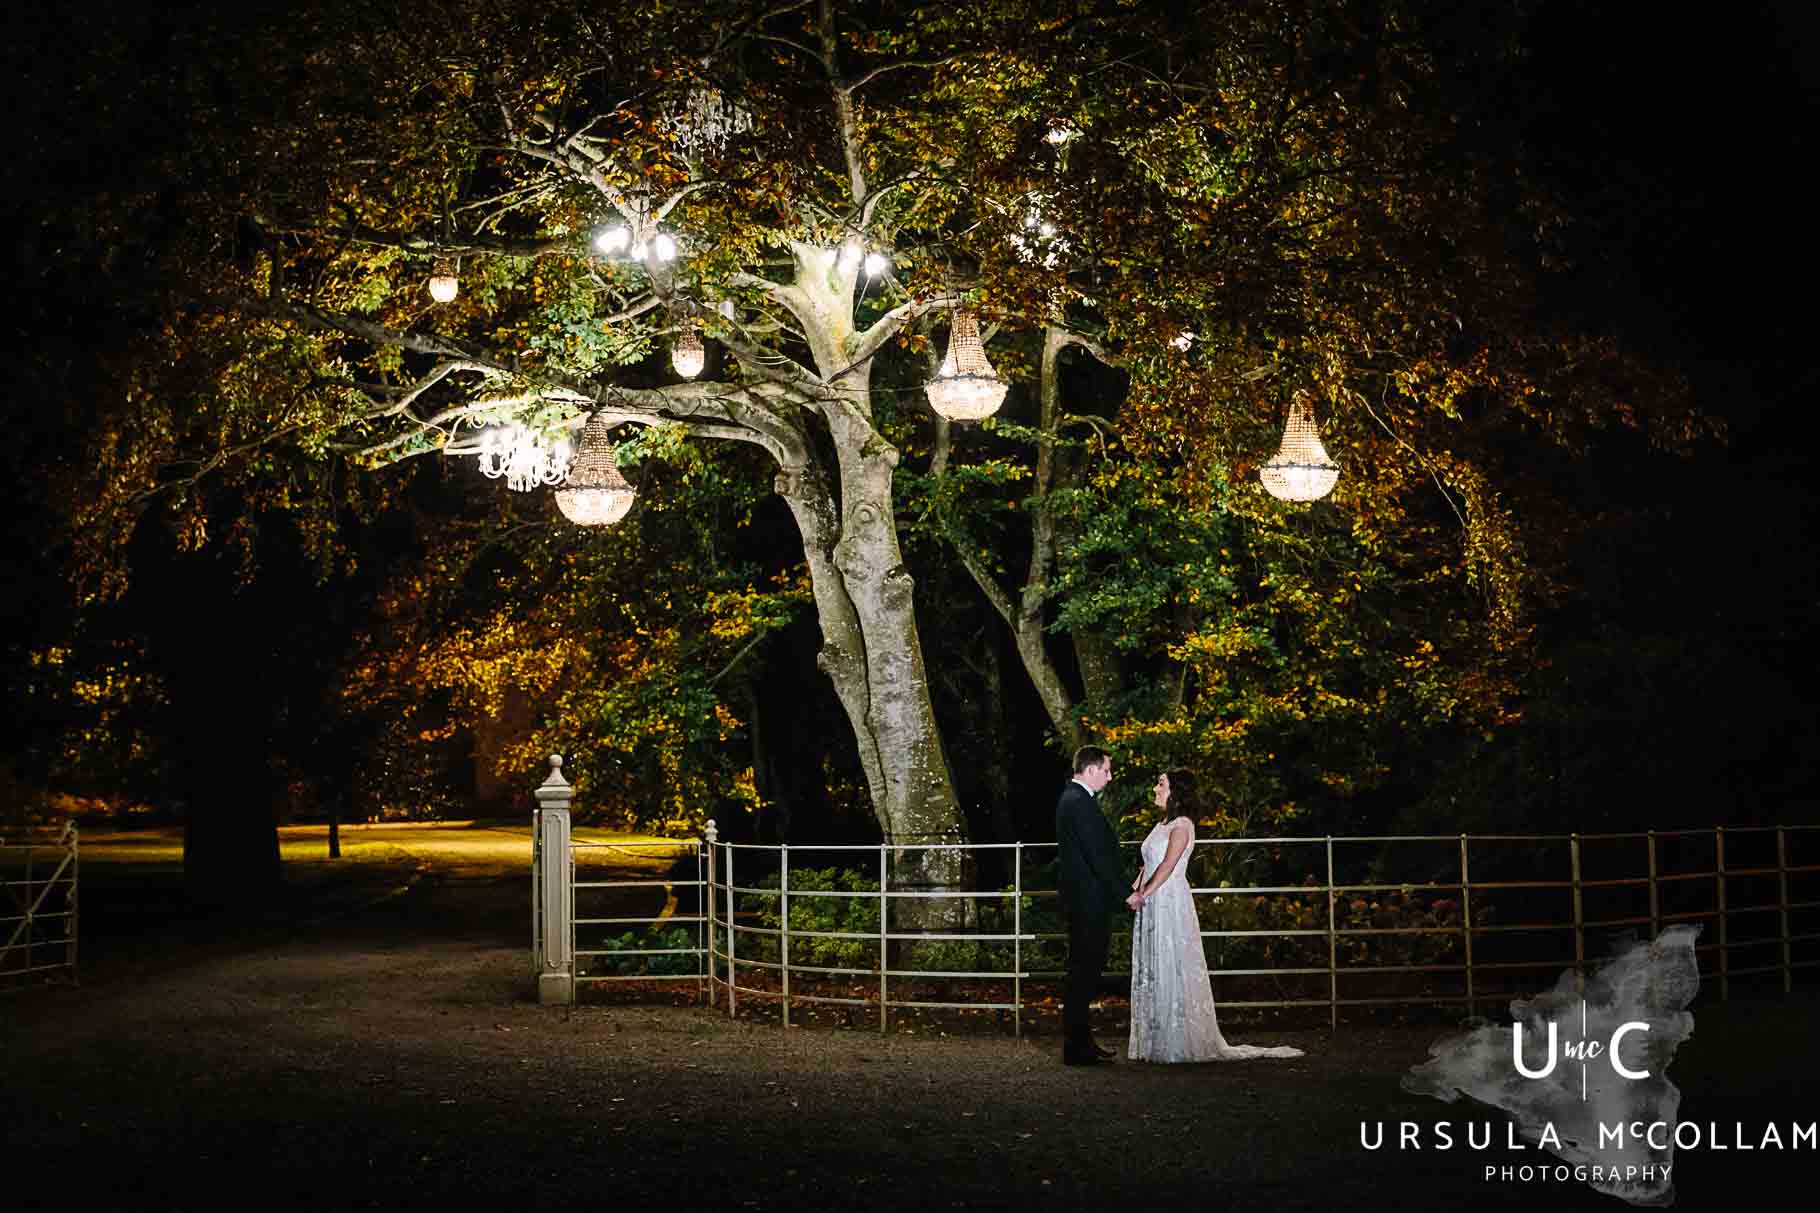 Bride and groom holding hands in the dark under a tree with lanterns at Ballymagarvey Village by Ursula McCollam a Wedding Photographer in Northern Ireland